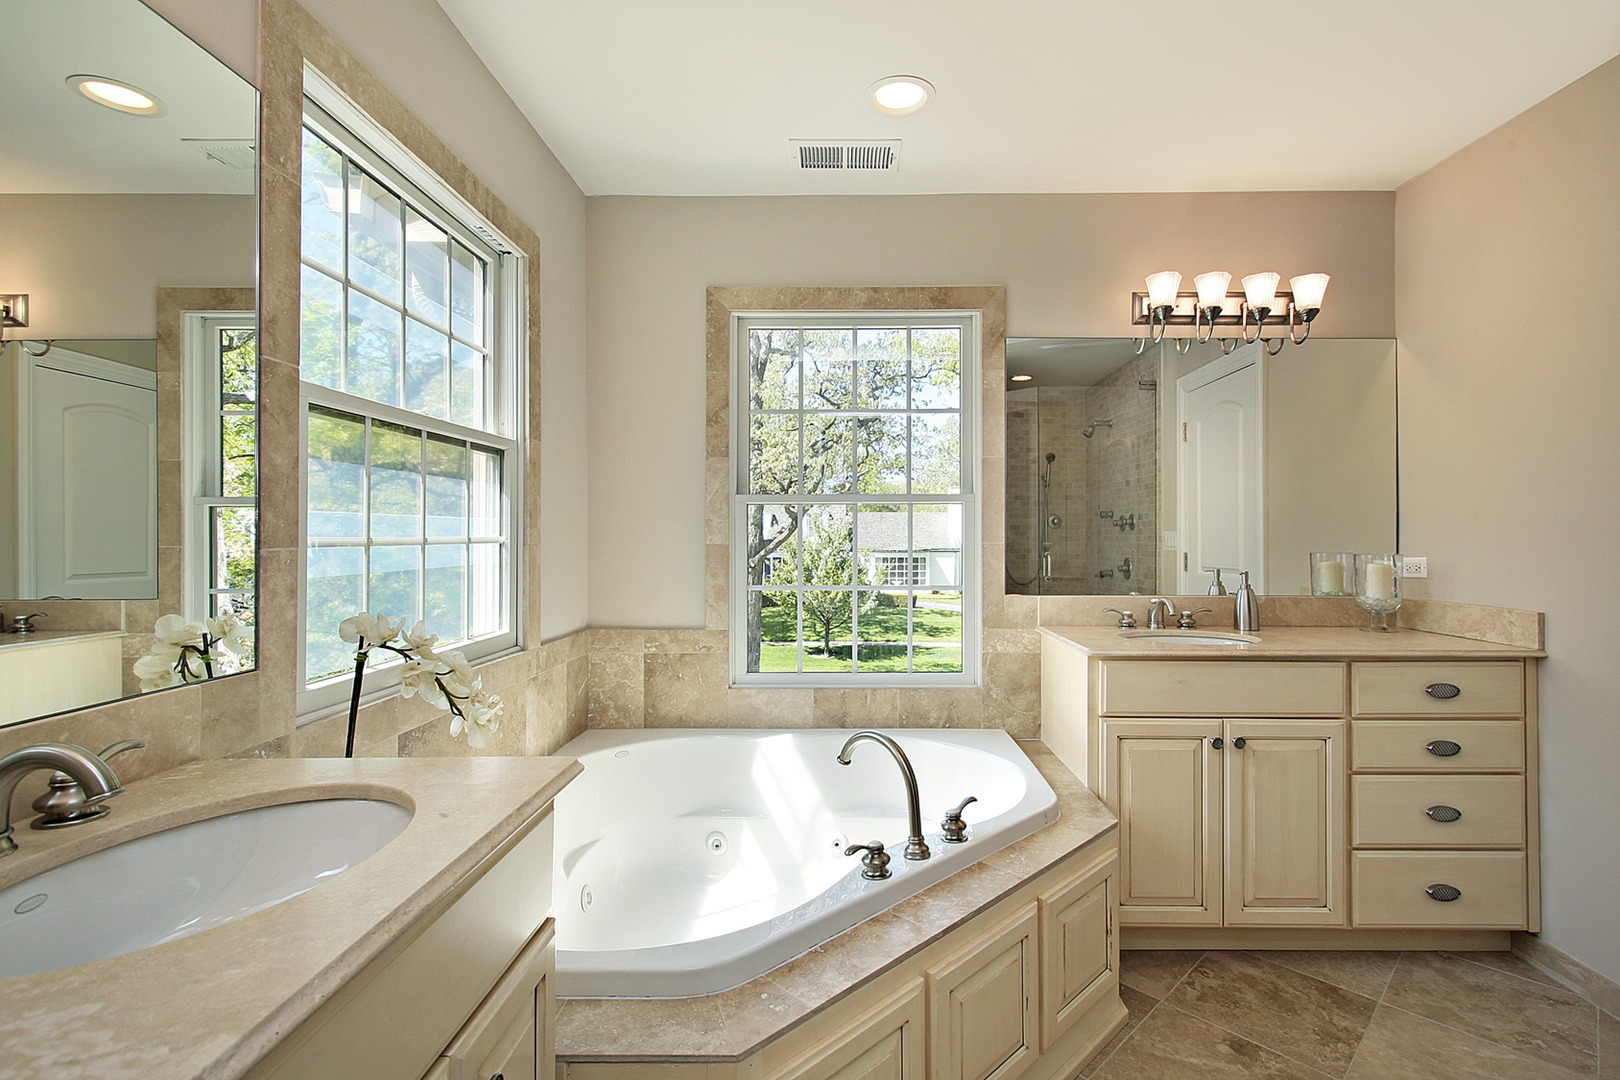 Home Remodeling Bathroom Makeover Kitchen Renovations All Trades - Bathroom remodel new port richey